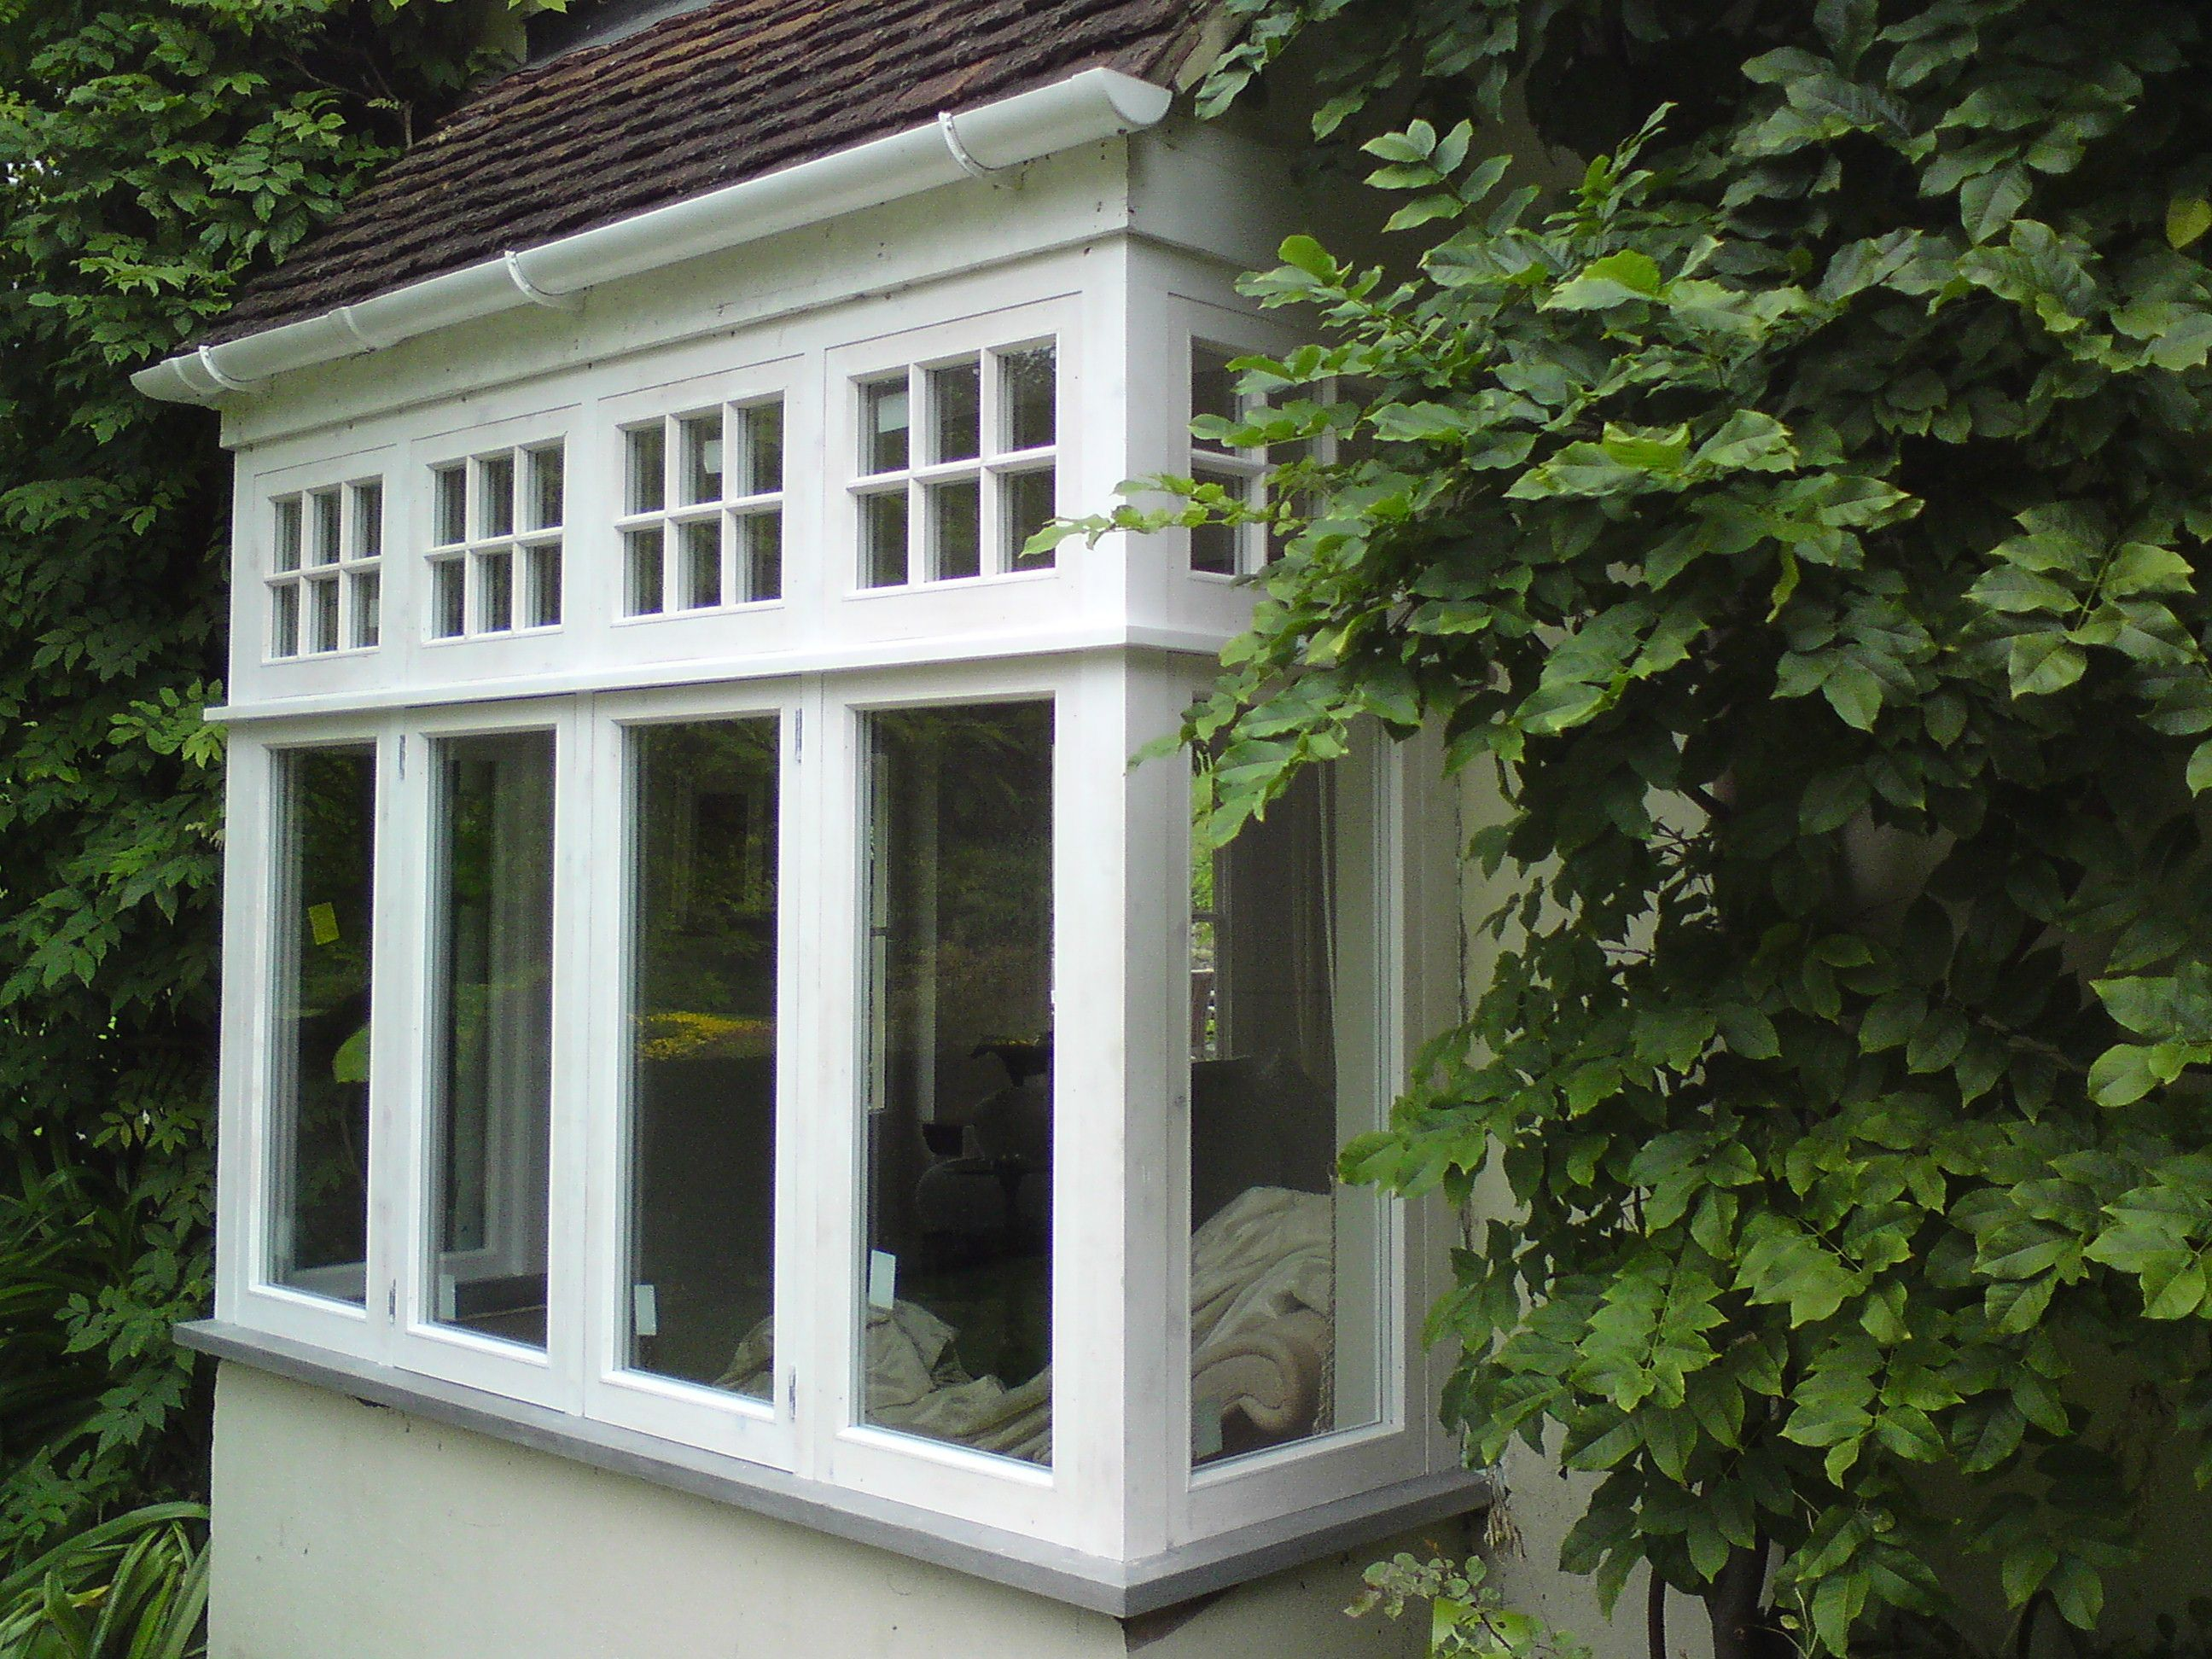 Window design for small house  living room ideas amusing white painted windows bay frames with